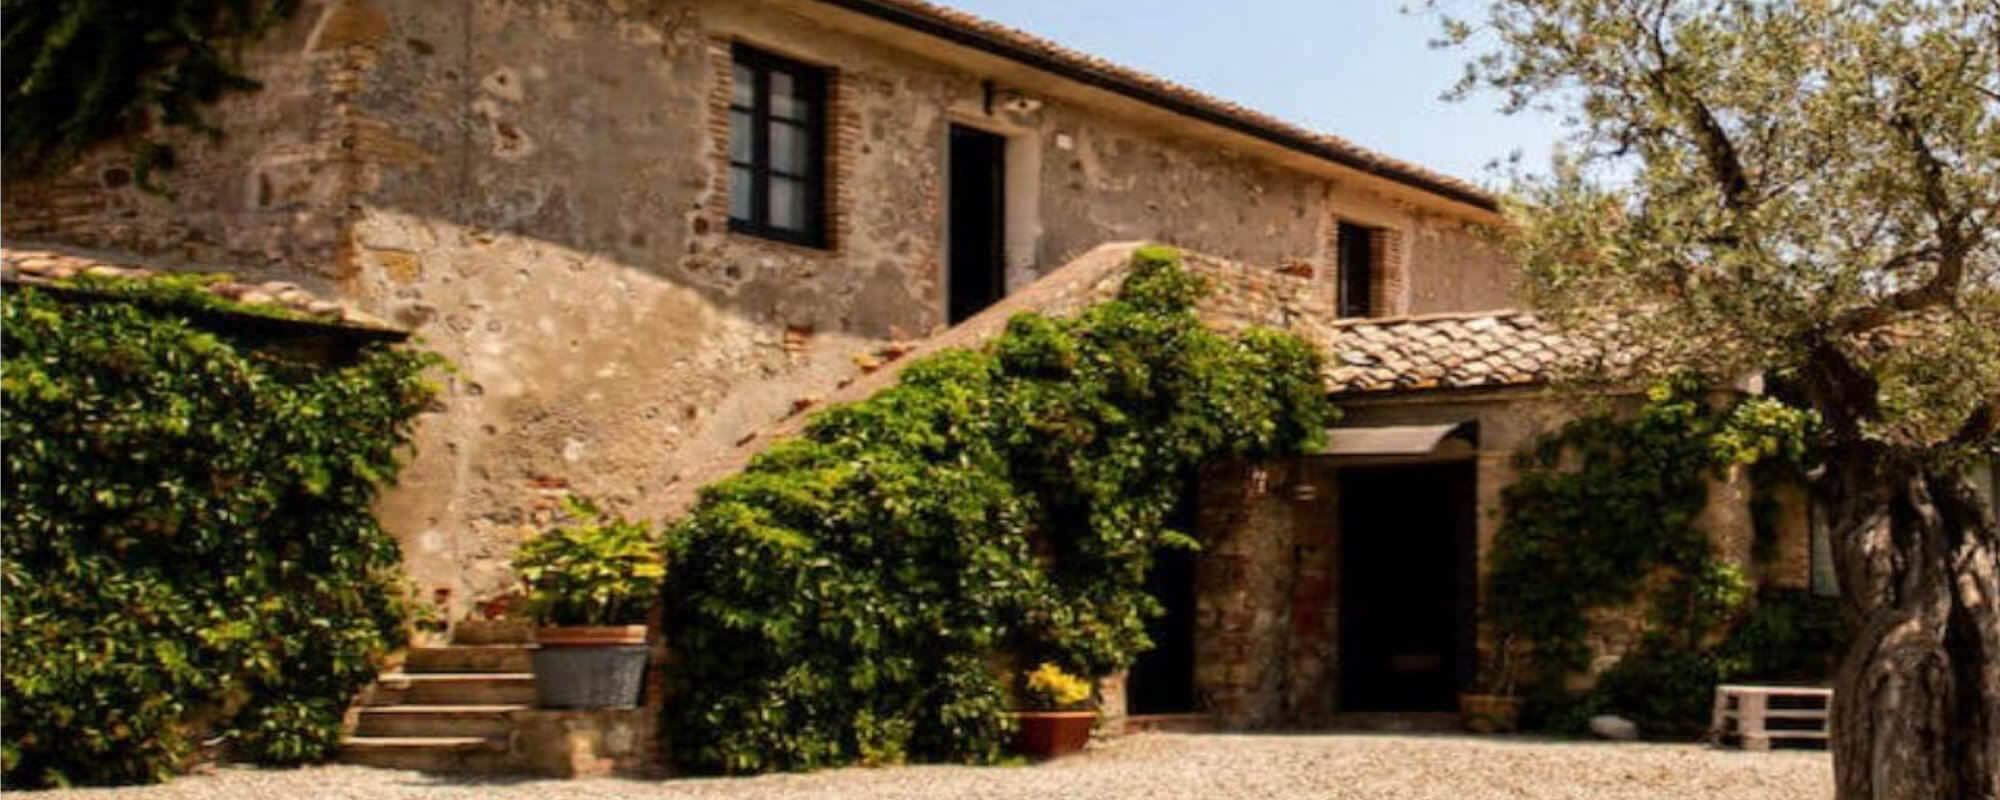 tuscany wedding venues with onsite accomodation